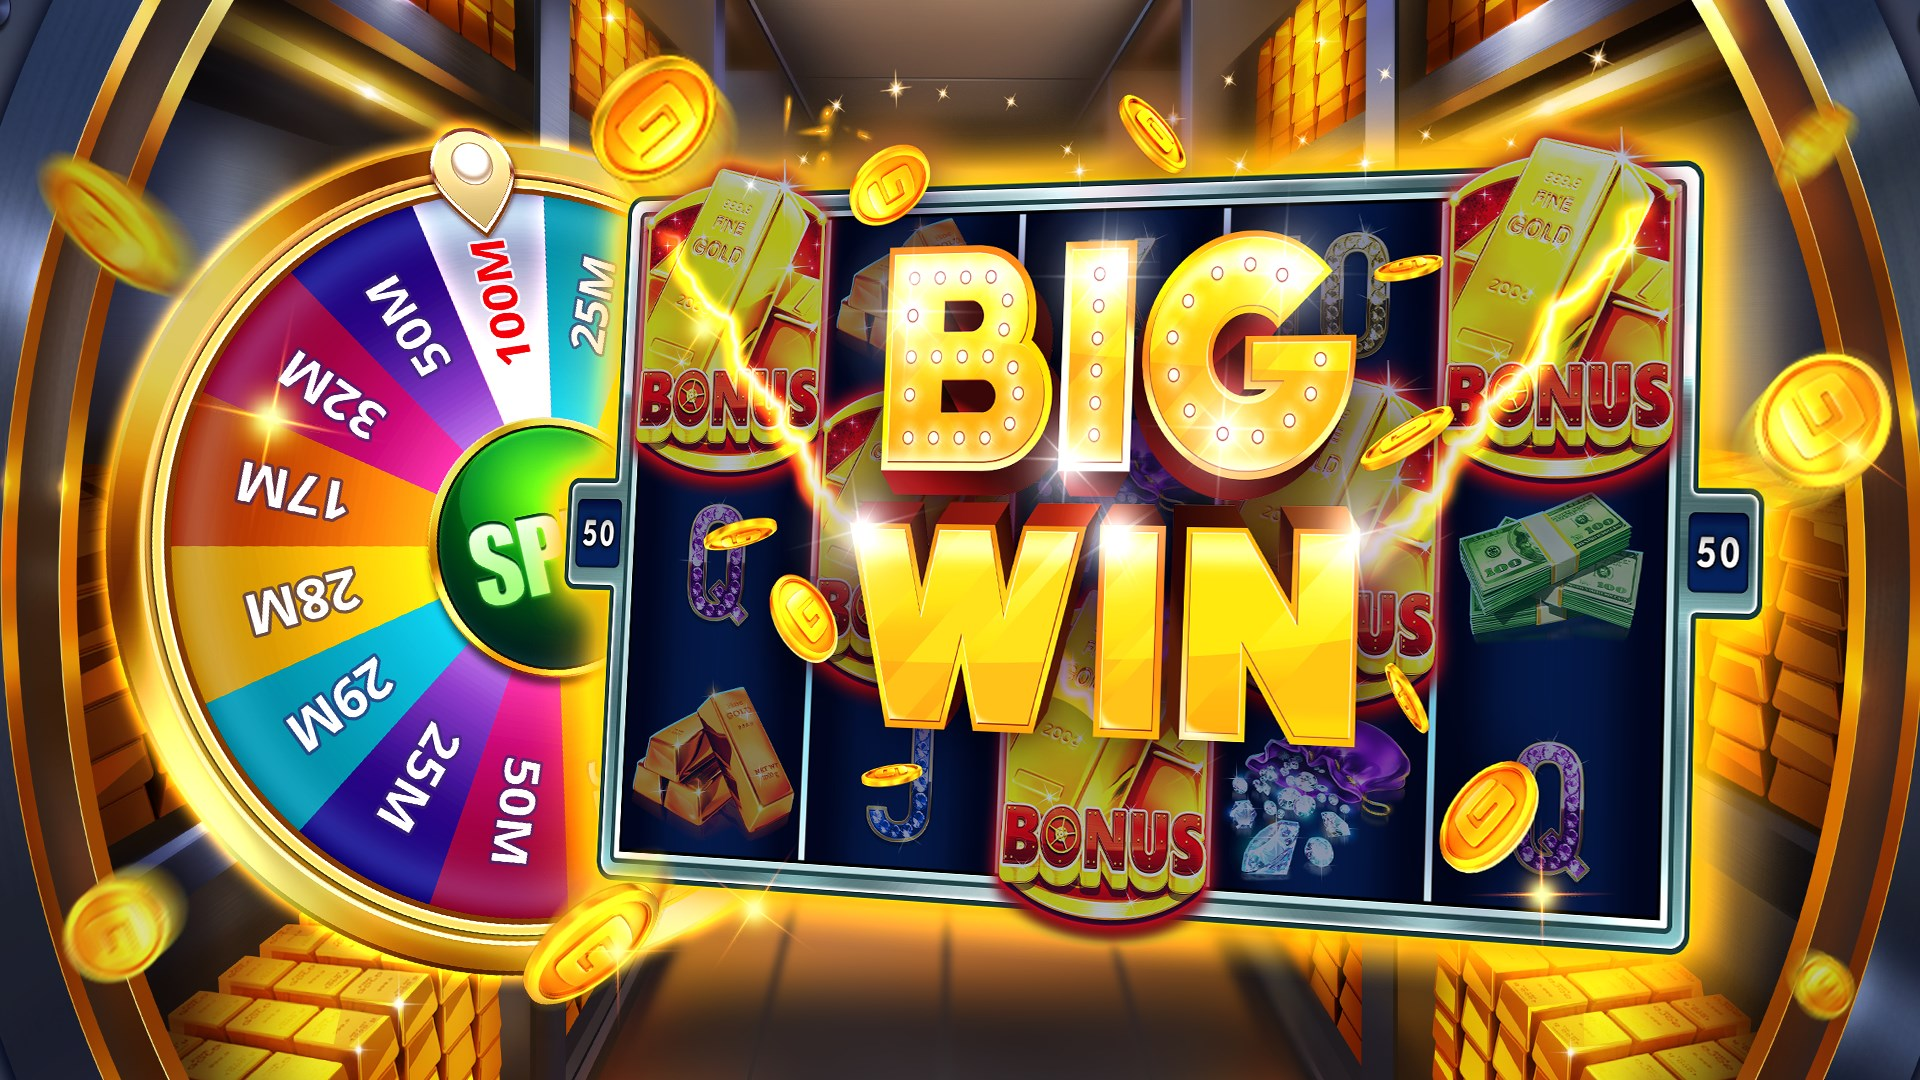 Online Games with Free Spins to boost more fun. - Destination Luxury